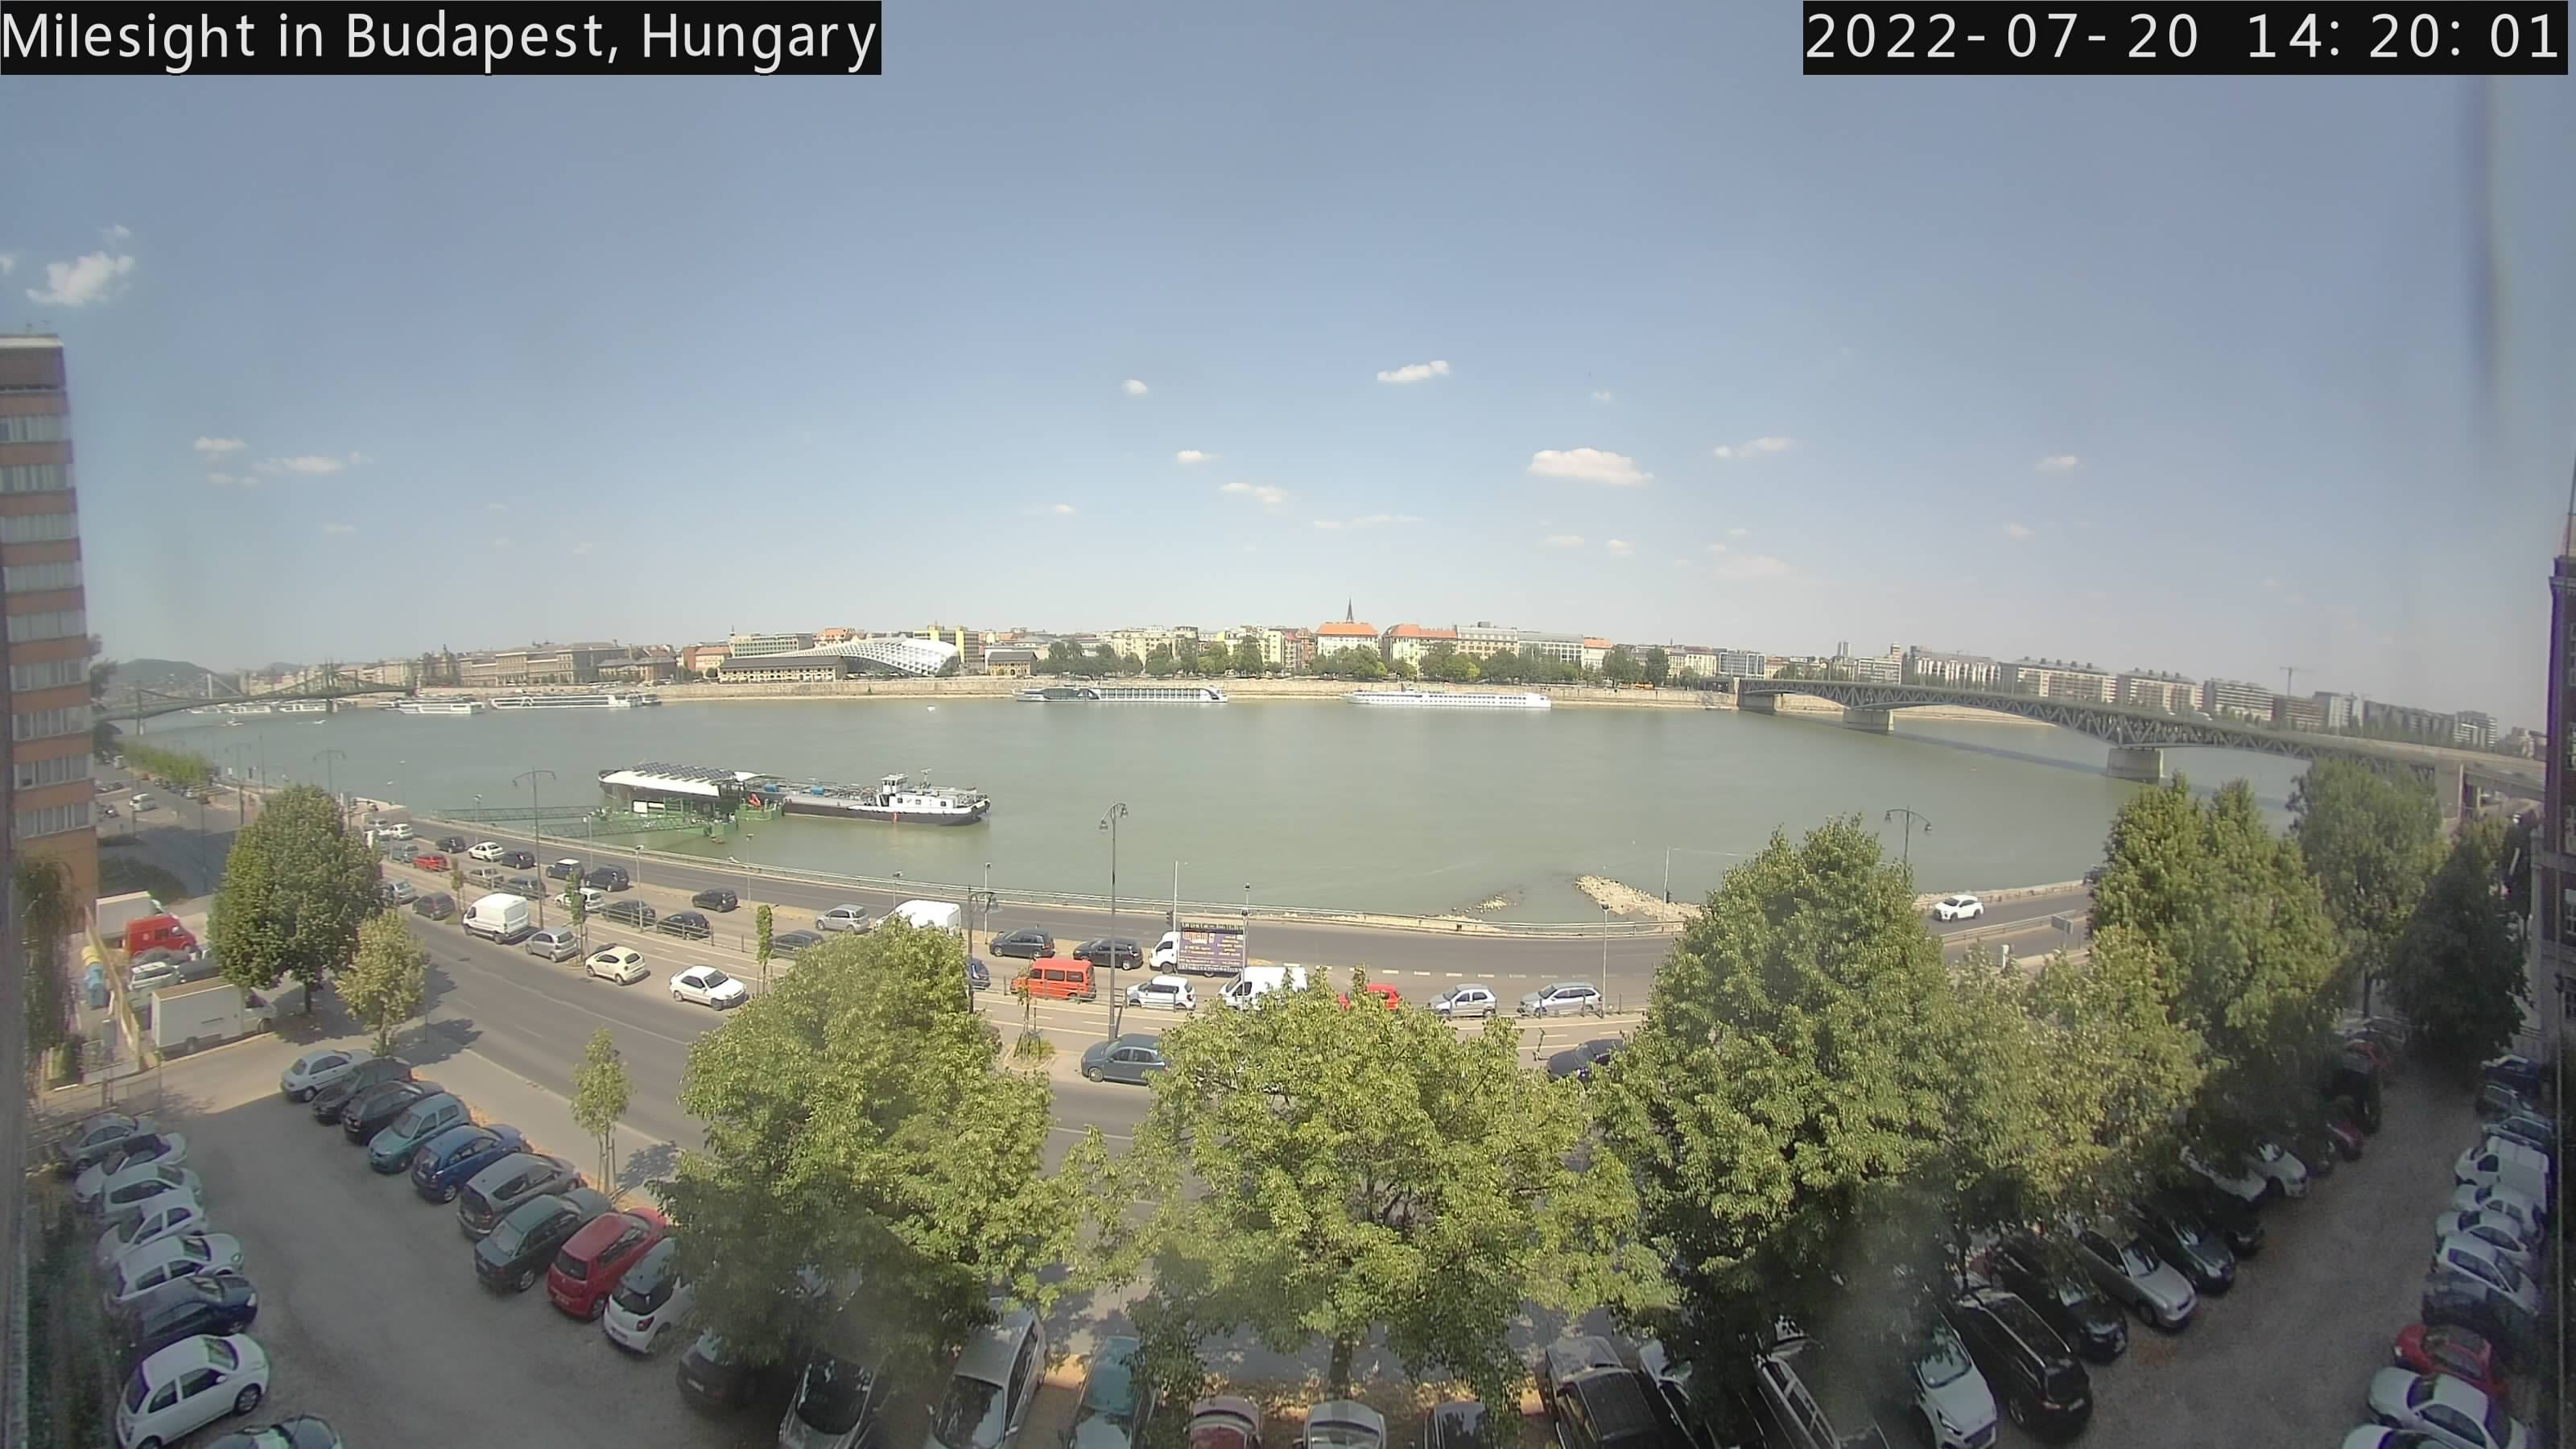 Budapest webcam - University of Technology and Economics Budapest webcam, Central Hungary, Budapesti